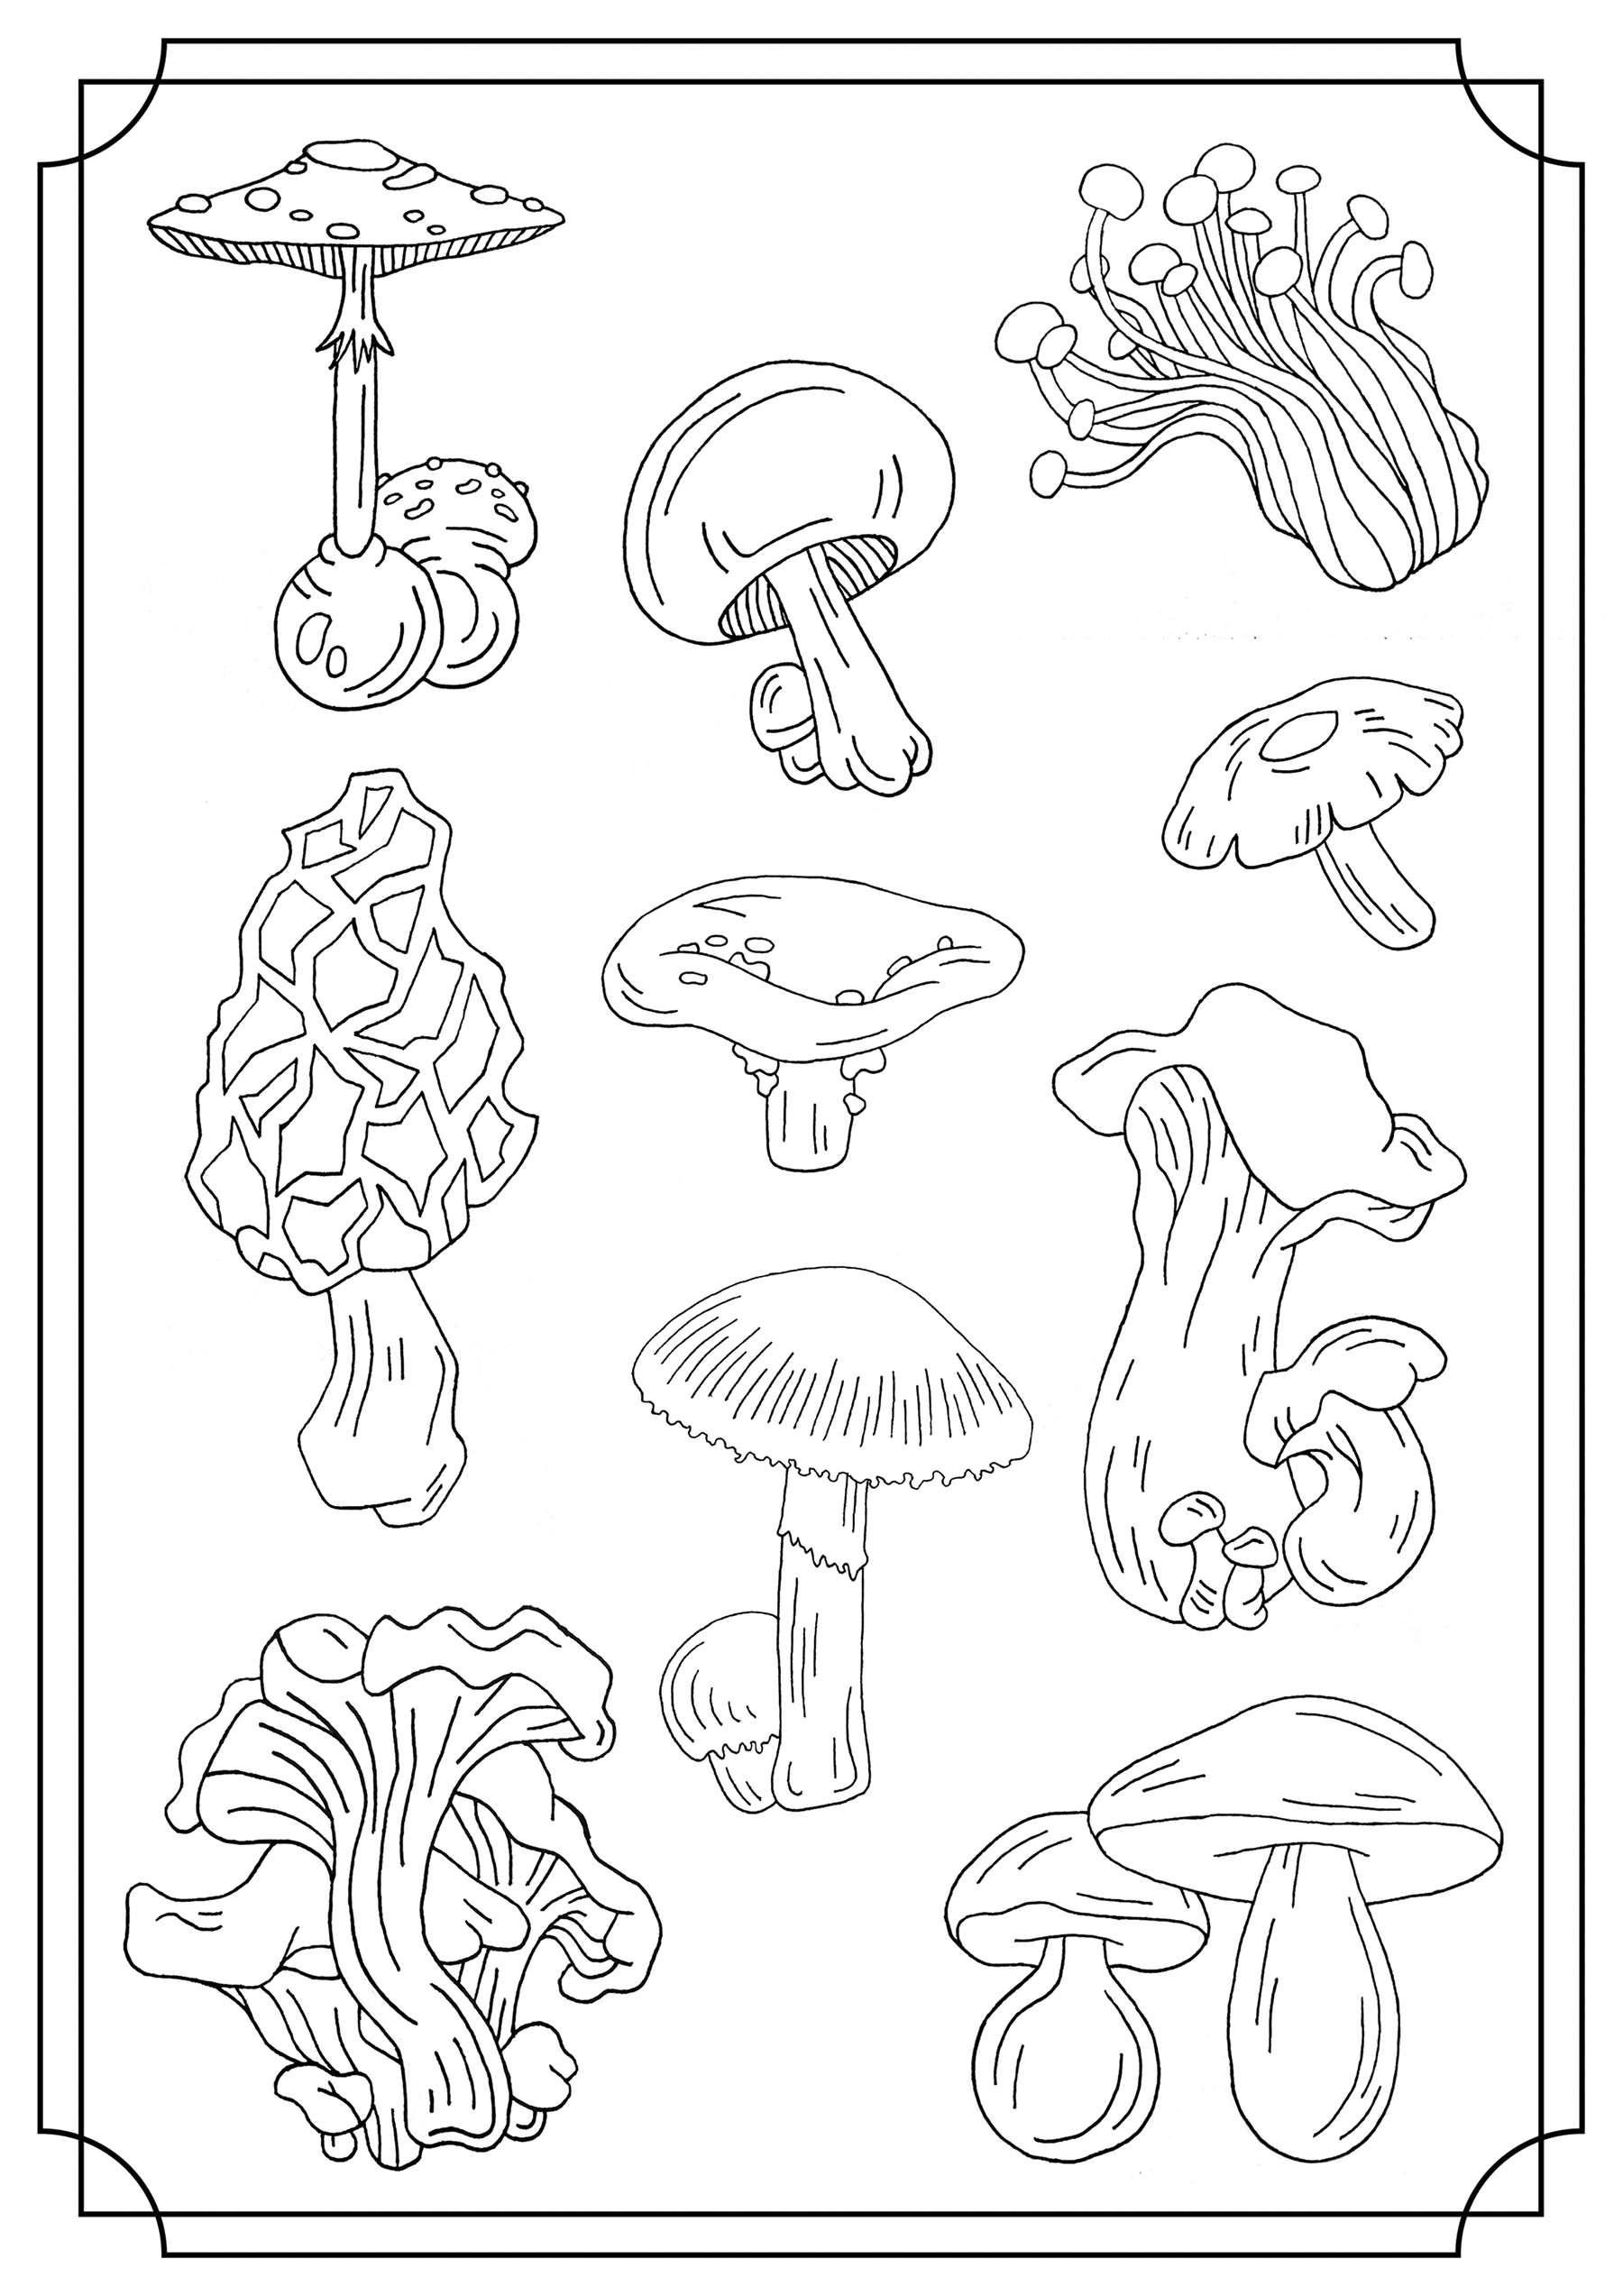 Incredible Mushrooms coloring page to print and color for free